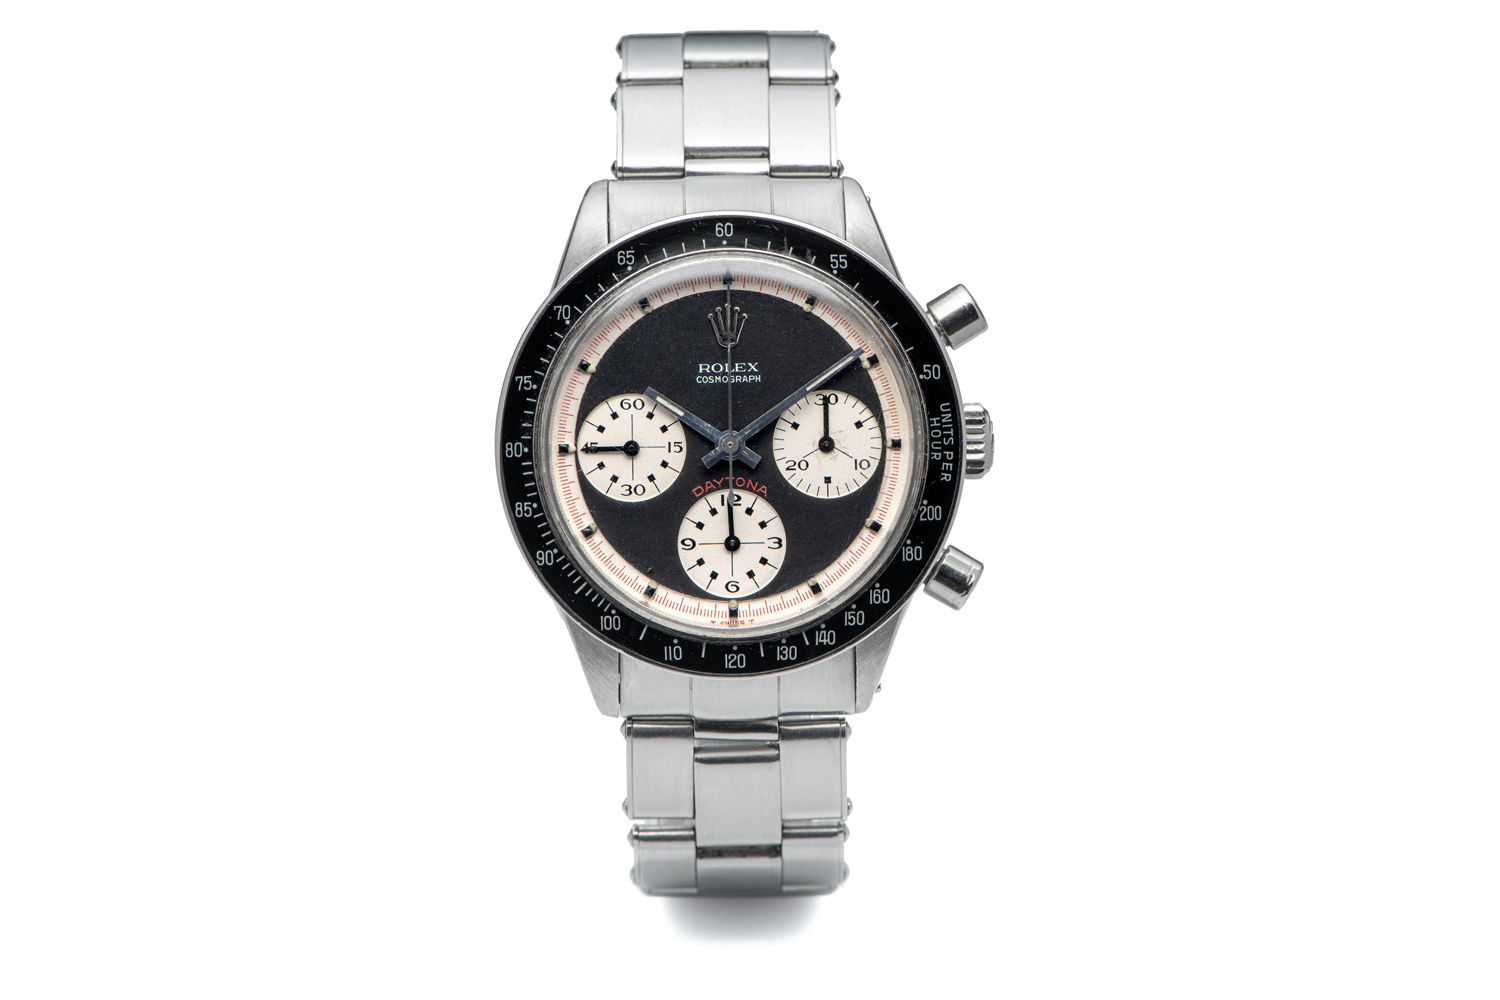 A reference 6241 Paul Newman Daytona that sold for $185k at Antiquorum's March 2020 Private Sale